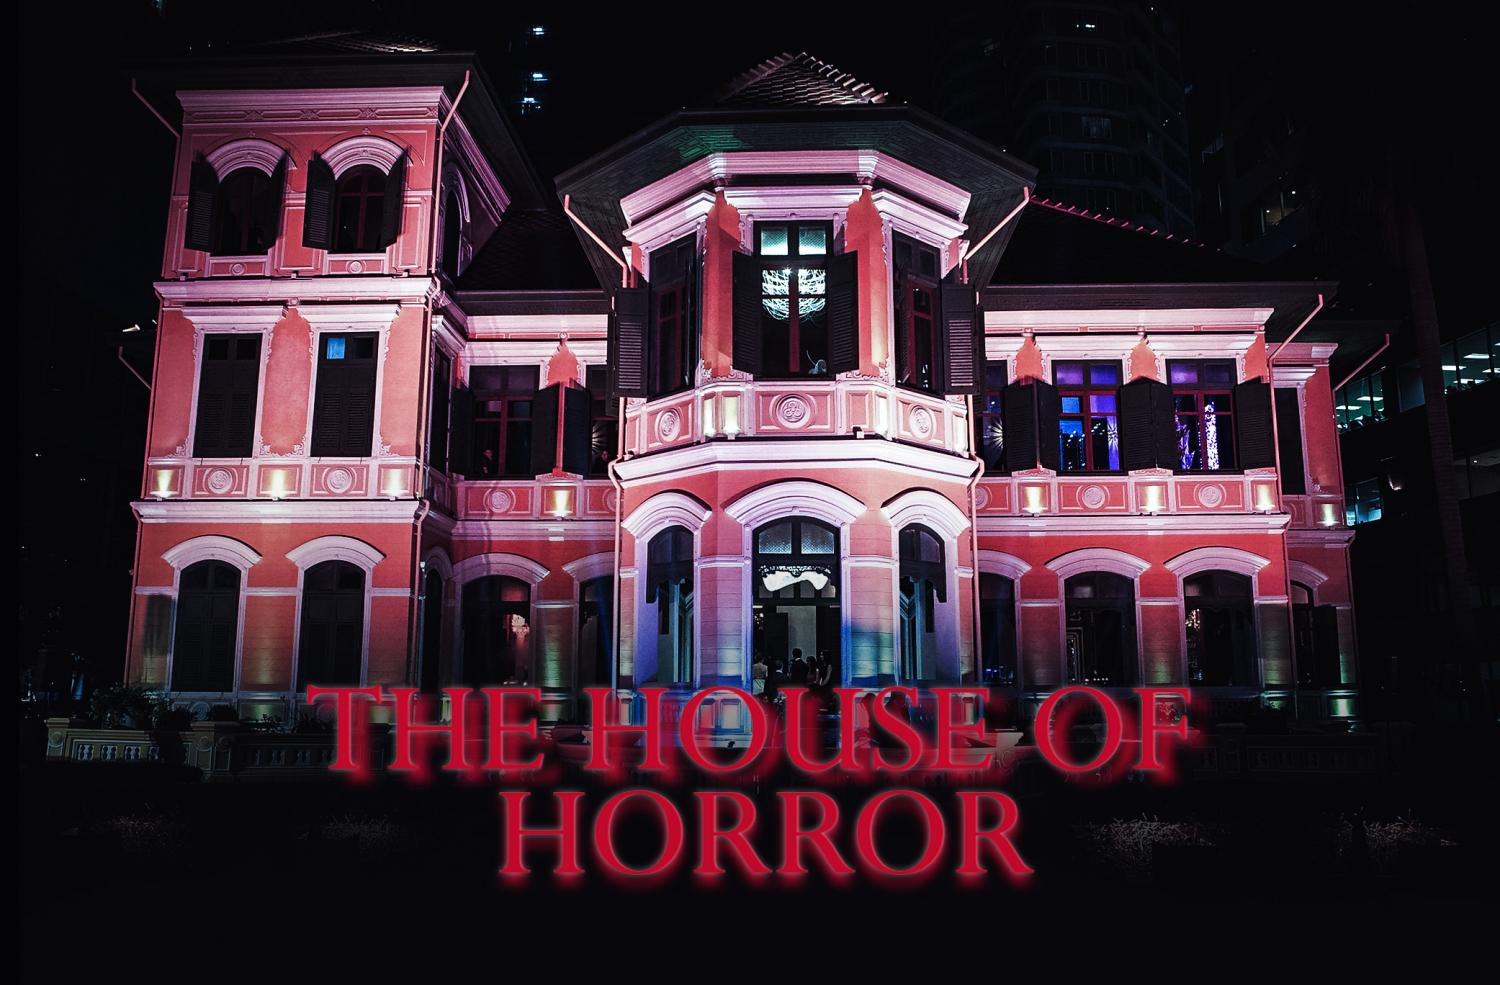 House of horrors comes to  the House on Sathorn